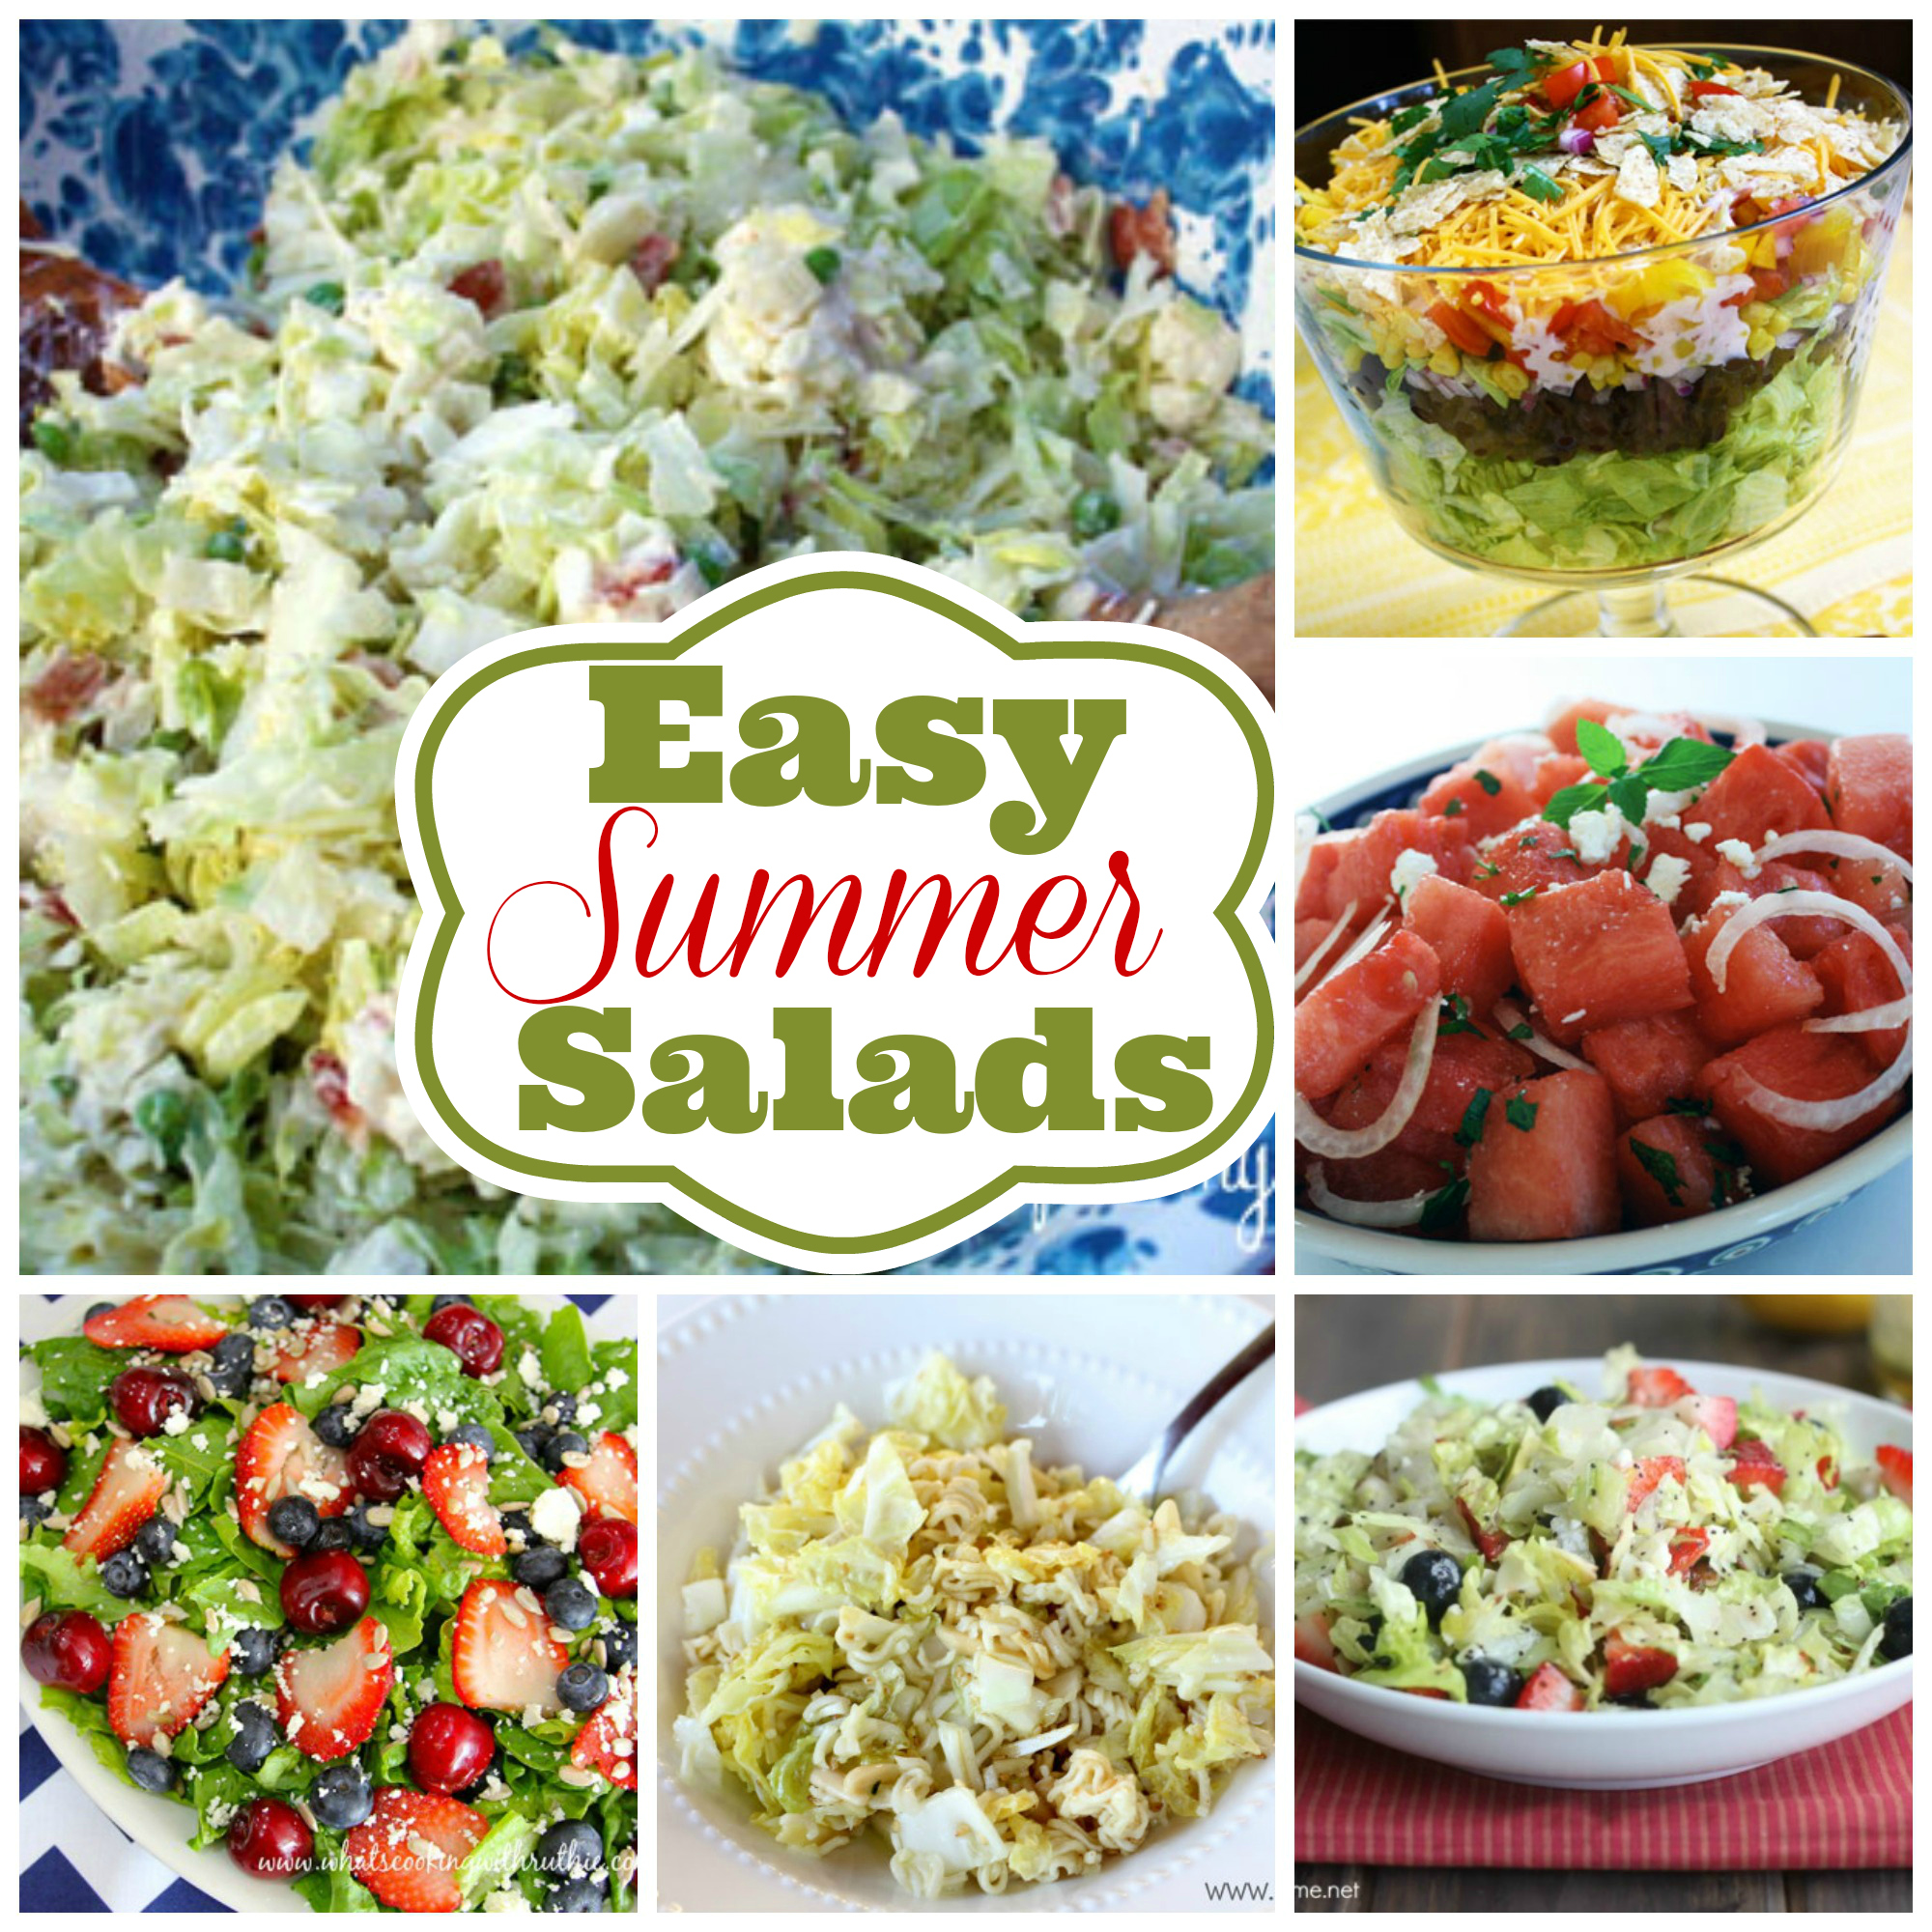 Easy Summer Lunch Ideas 6 easy summer salad recipes sisterspd